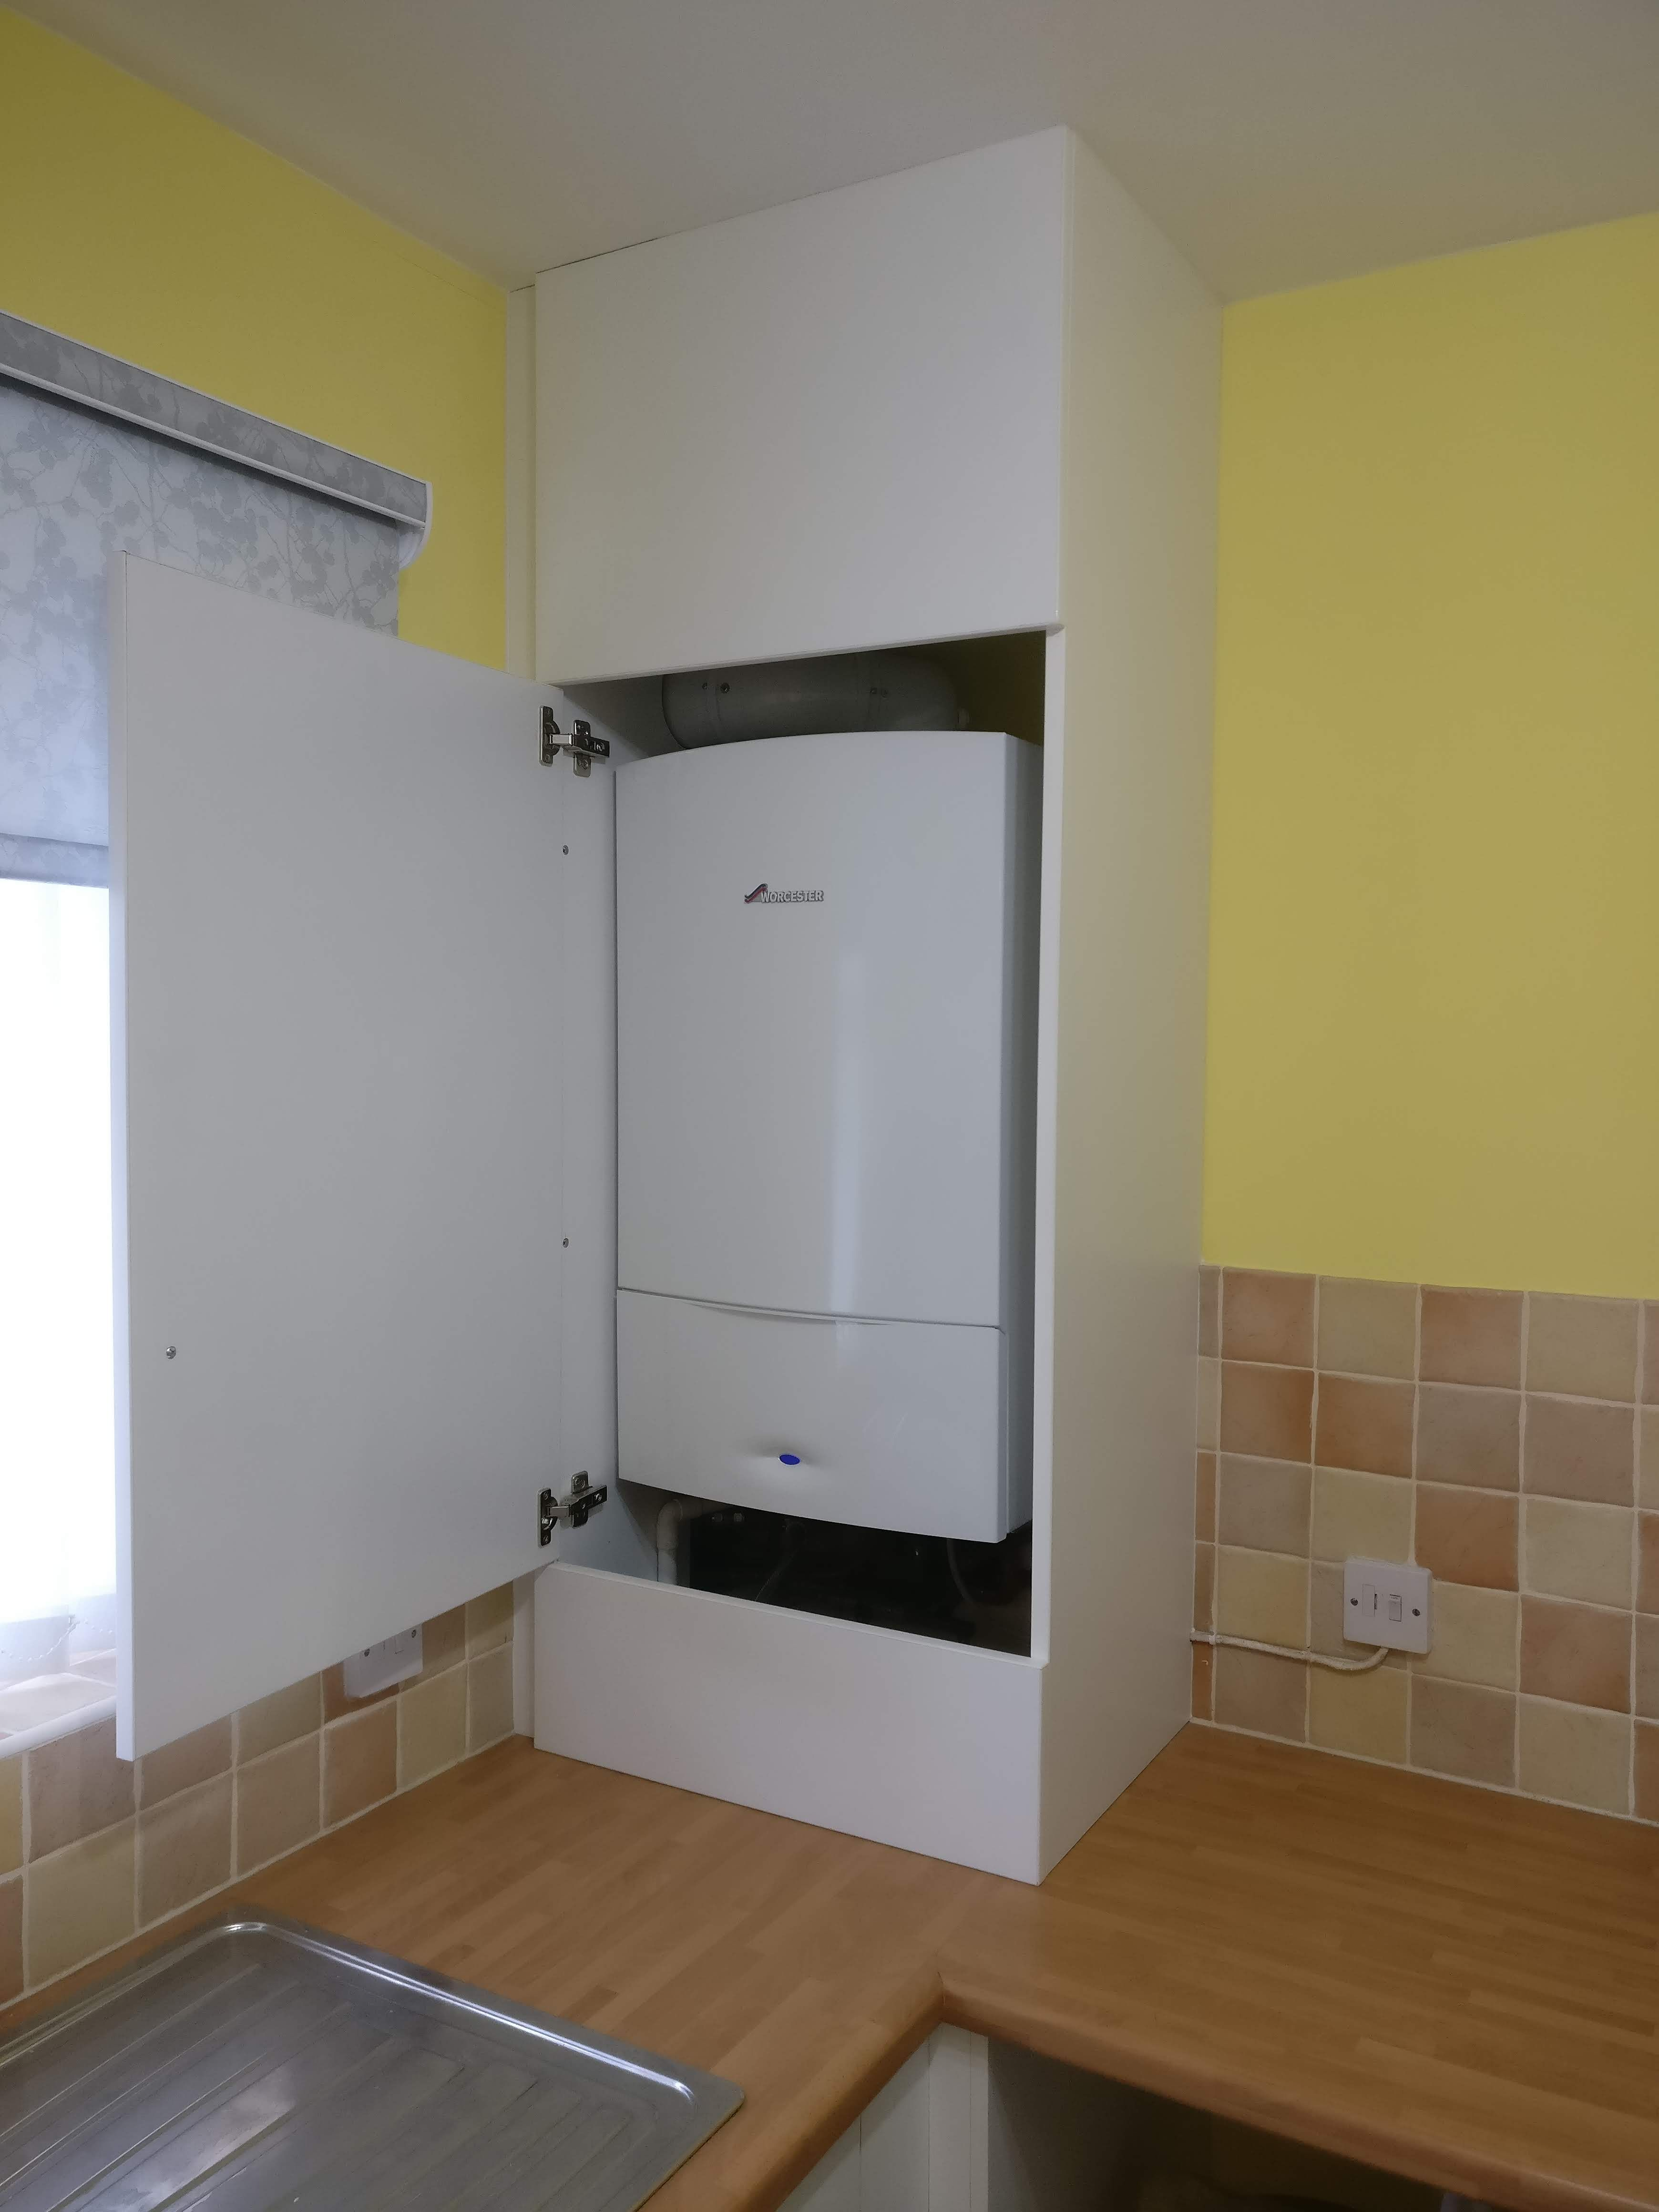 White Melamine Boiler Surround With The Door Open Full And Easy Access To The Boiler With Removable Panels Top And Bottom If More Acc With Images Home Home Decor Paneling